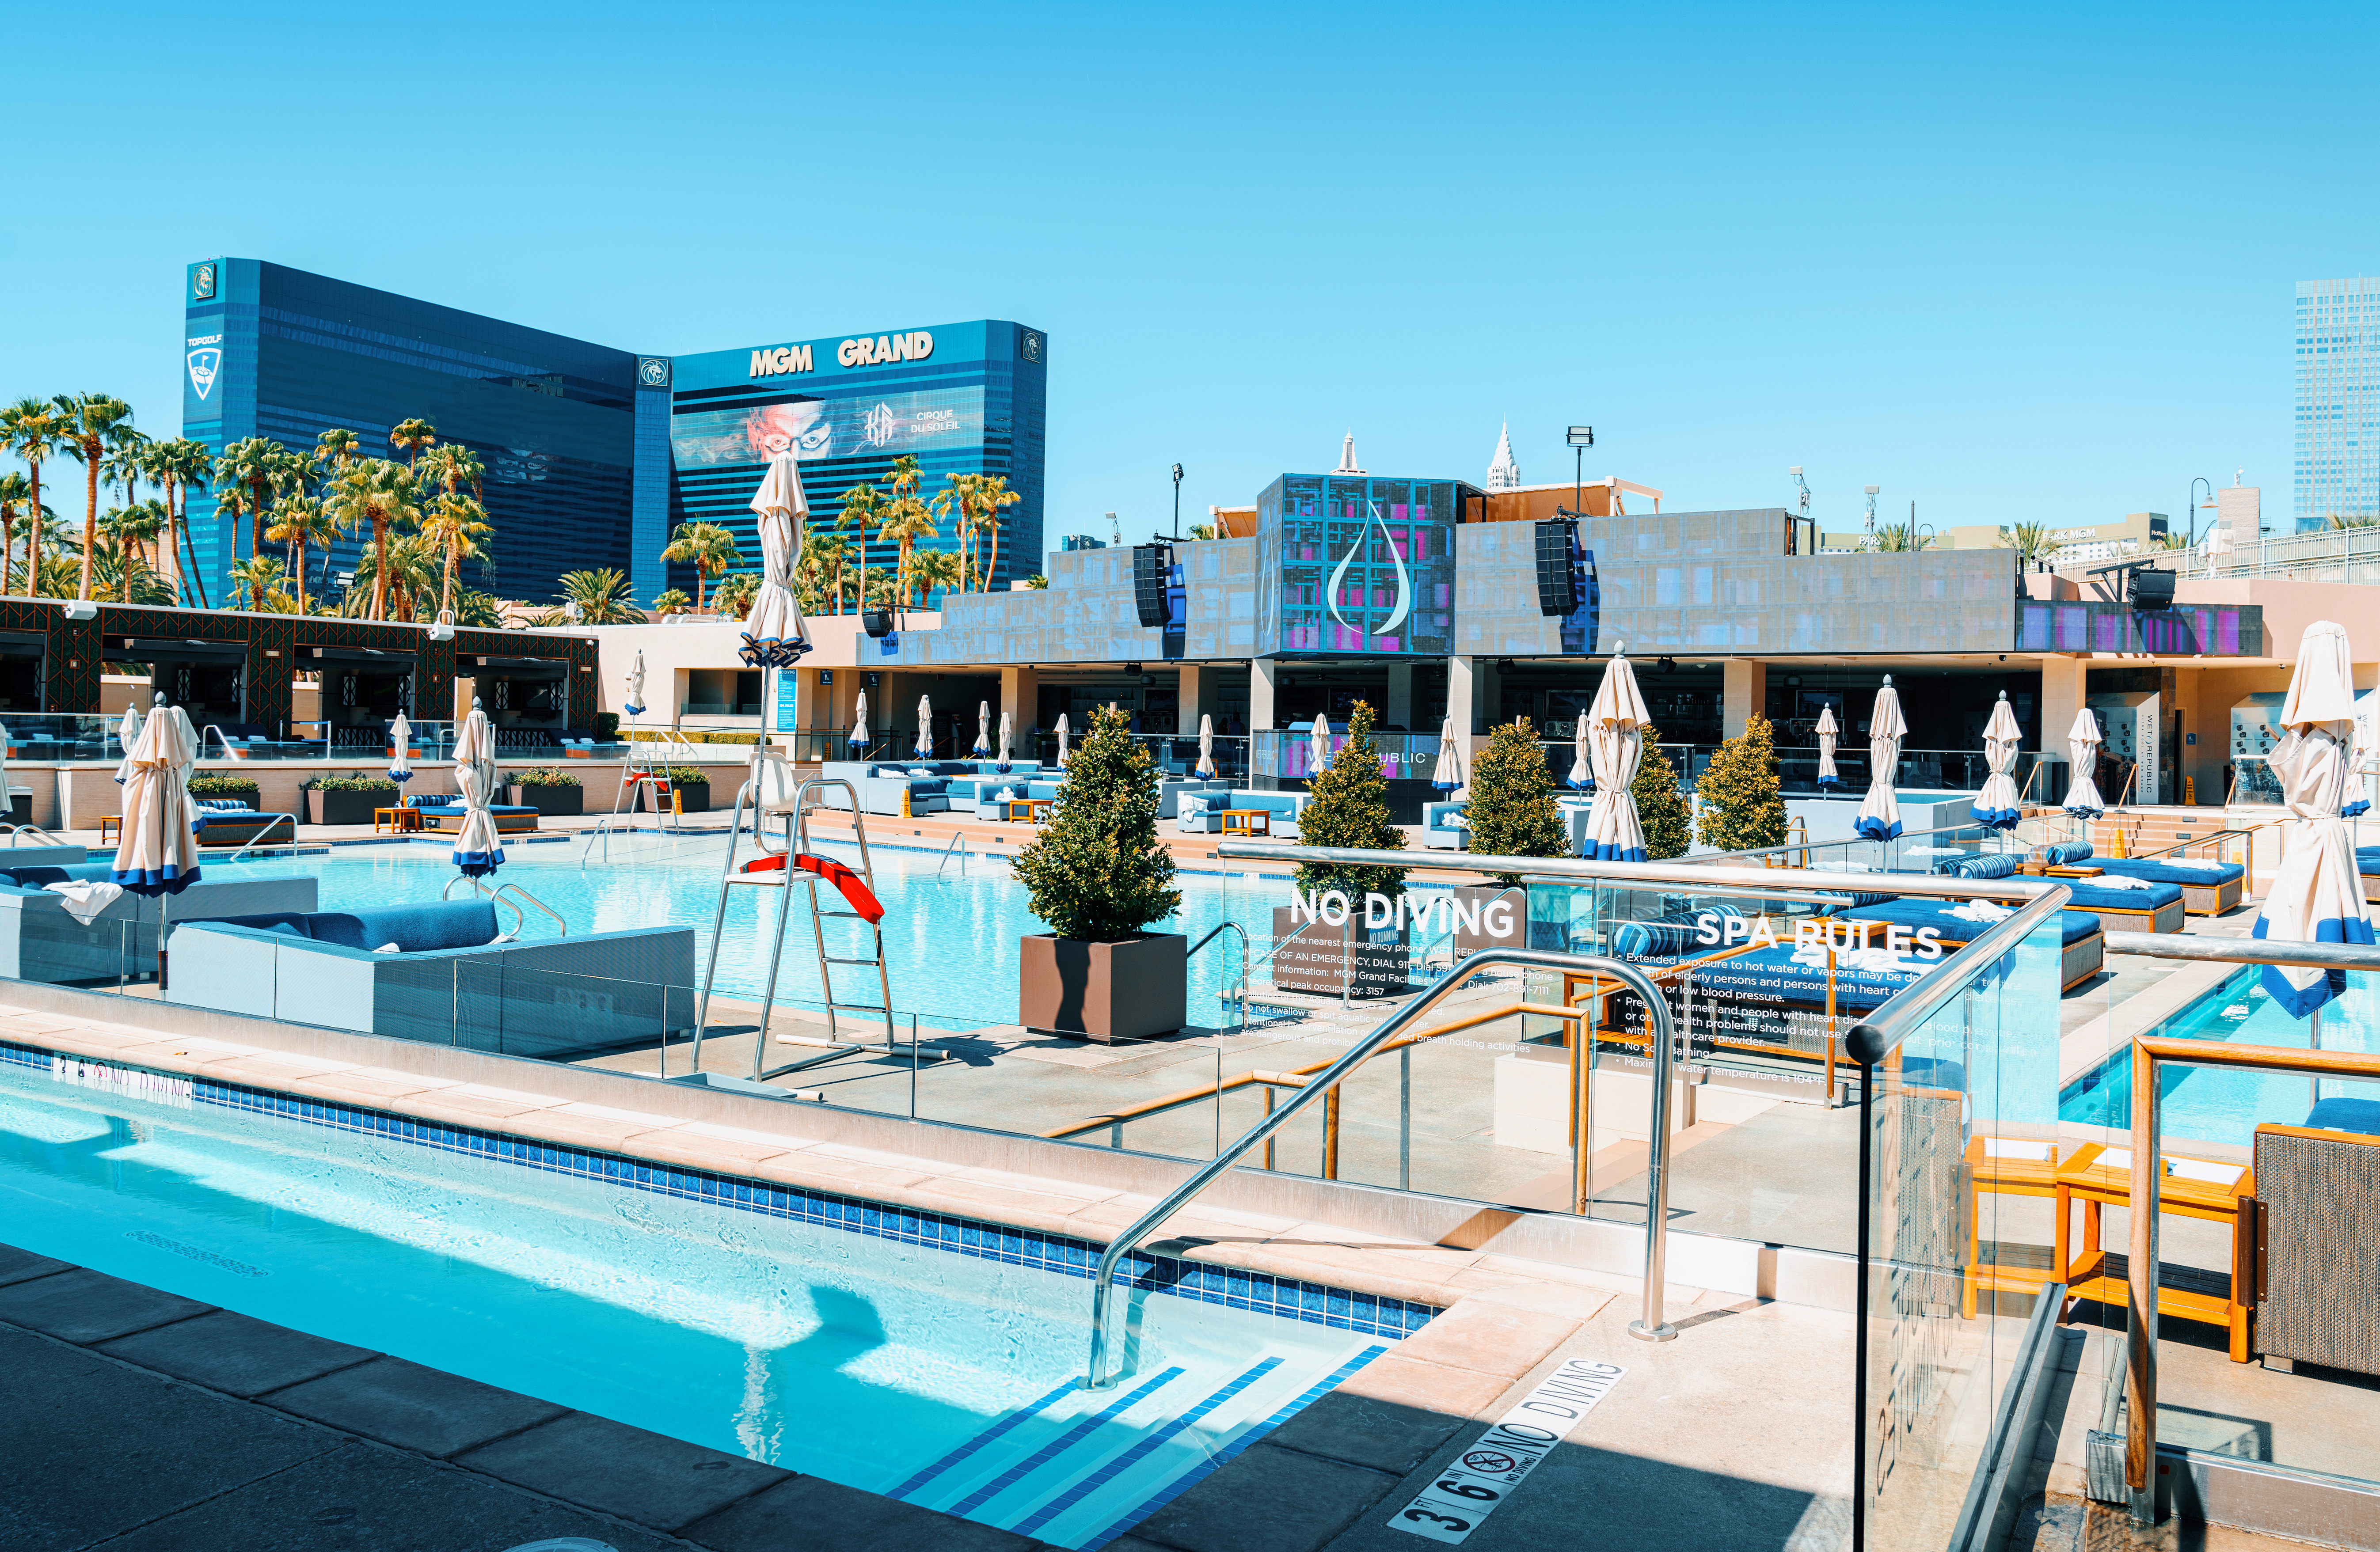 Pools at an outdoor venue with a casino in the background